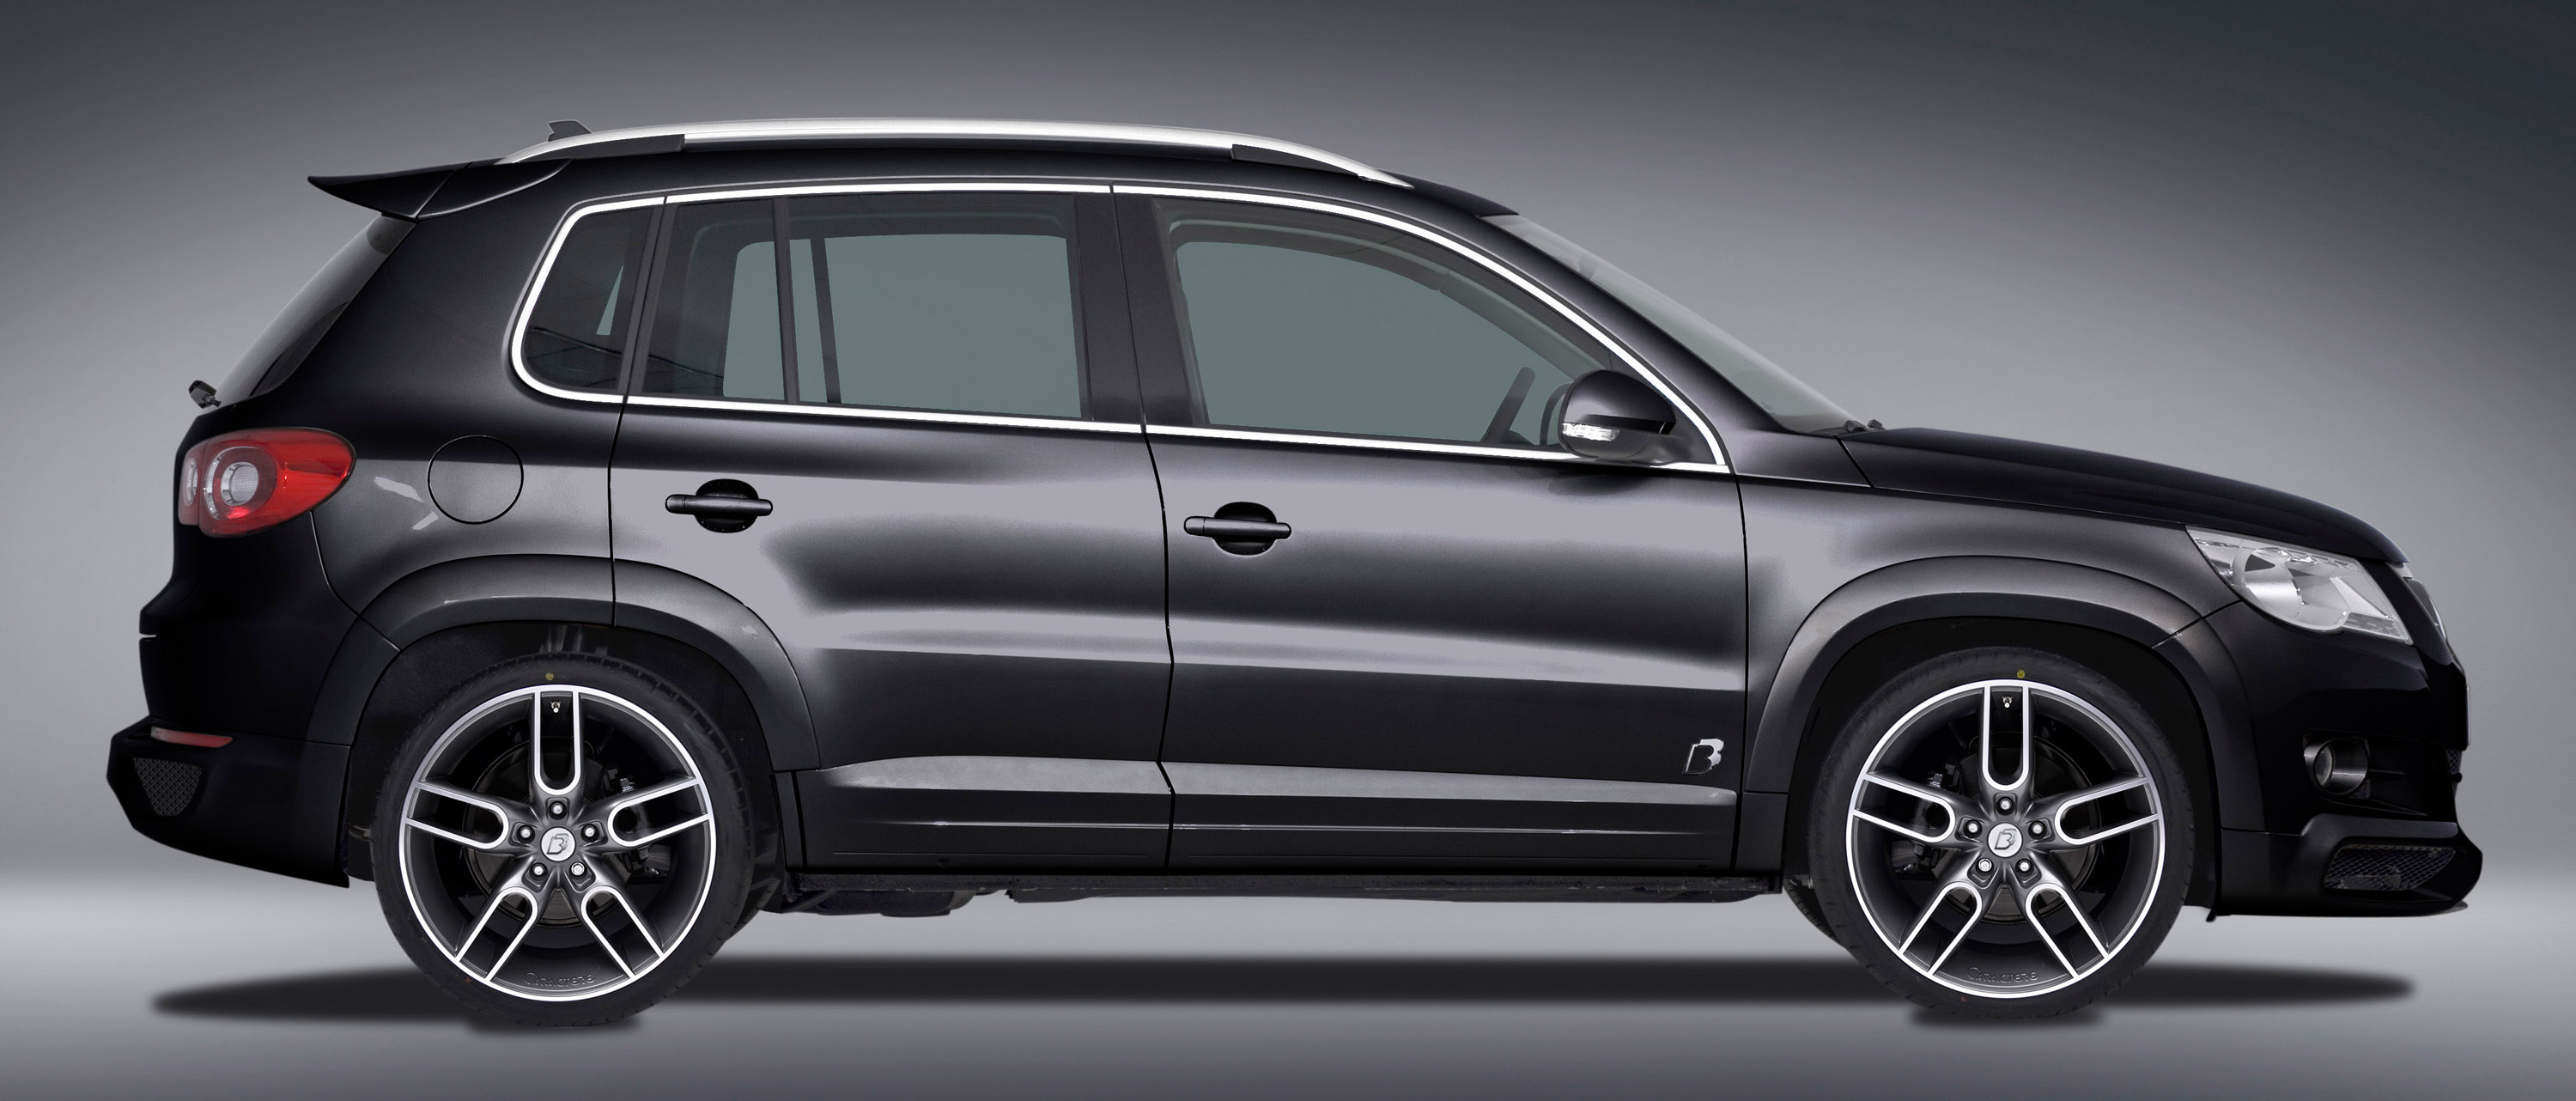 b b vw tiguan compact suv up to 300hp 420nm. Black Bedroom Furniture Sets. Home Design Ideas